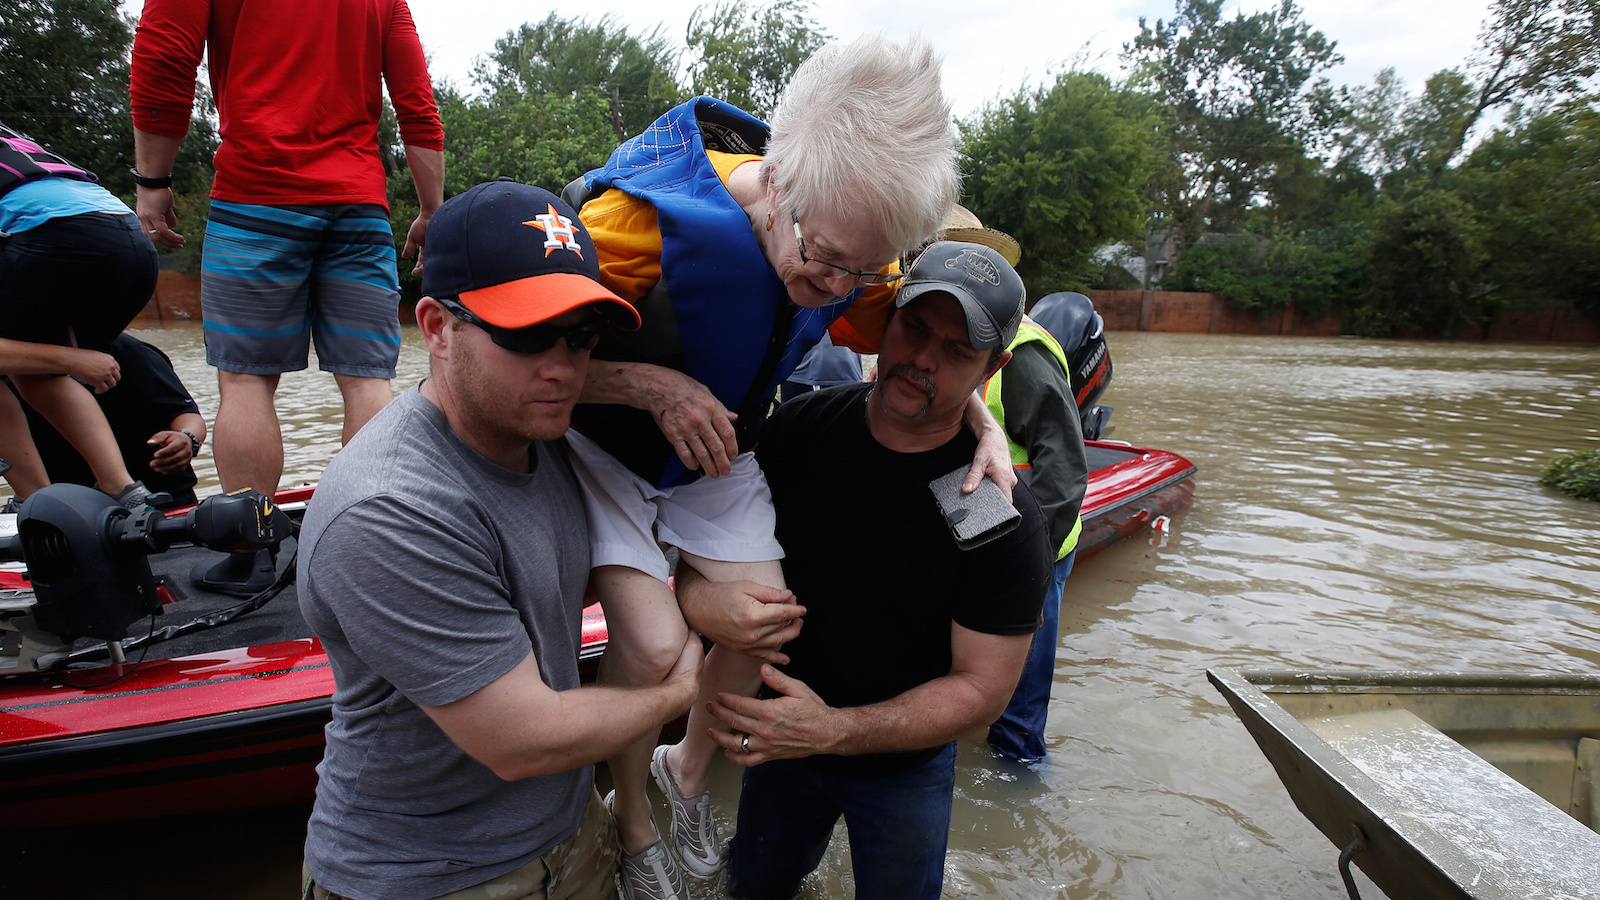 Volunteers help a woman from a rescue boat as it evacuates people from the rising waters of Buffalo Bayou following Hurricane Harvey in a neighborhood west of Houston